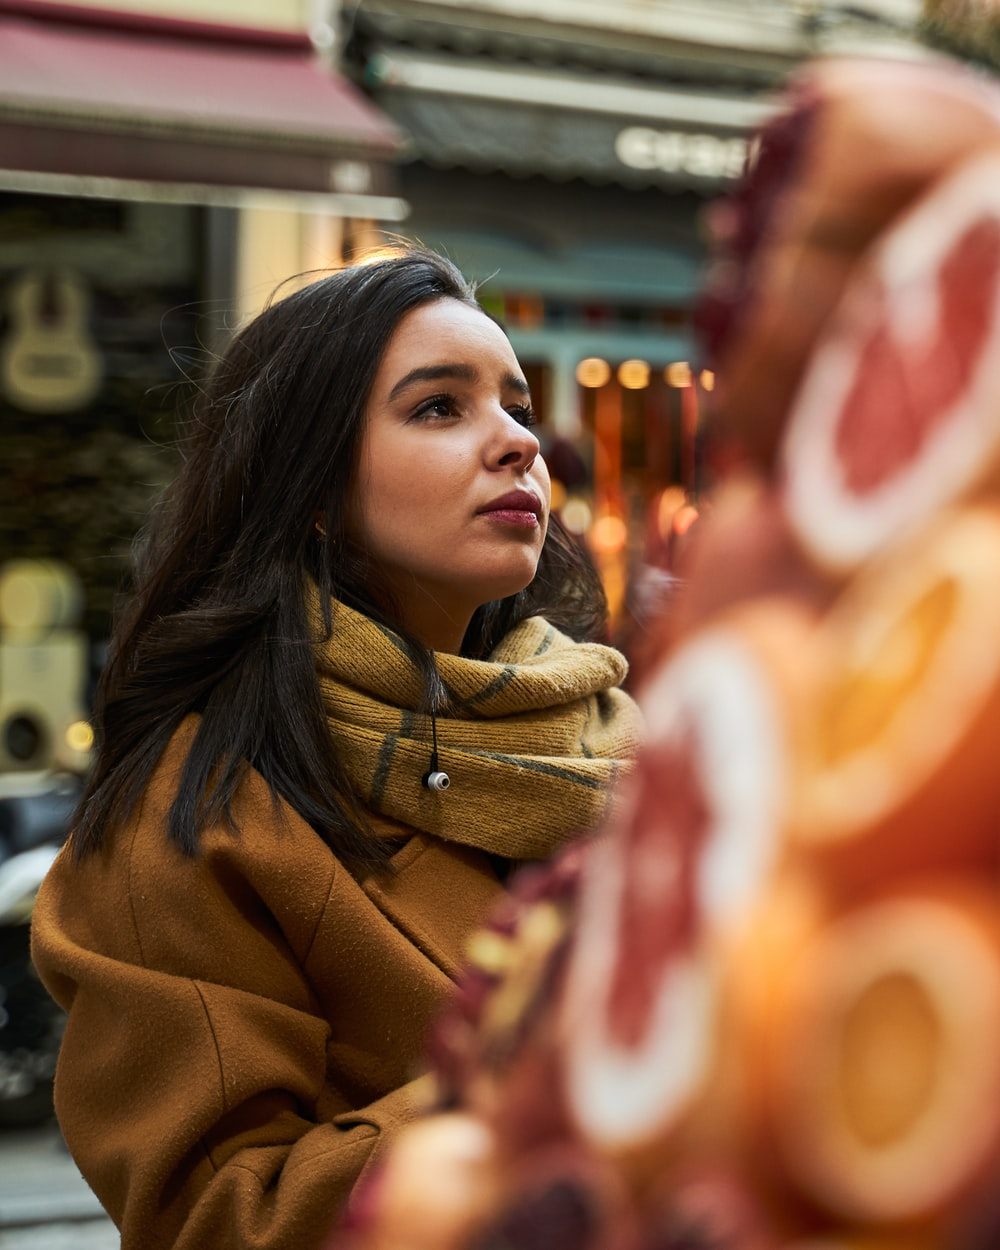 woman in brown scarf and brown coat standing near store during daytime